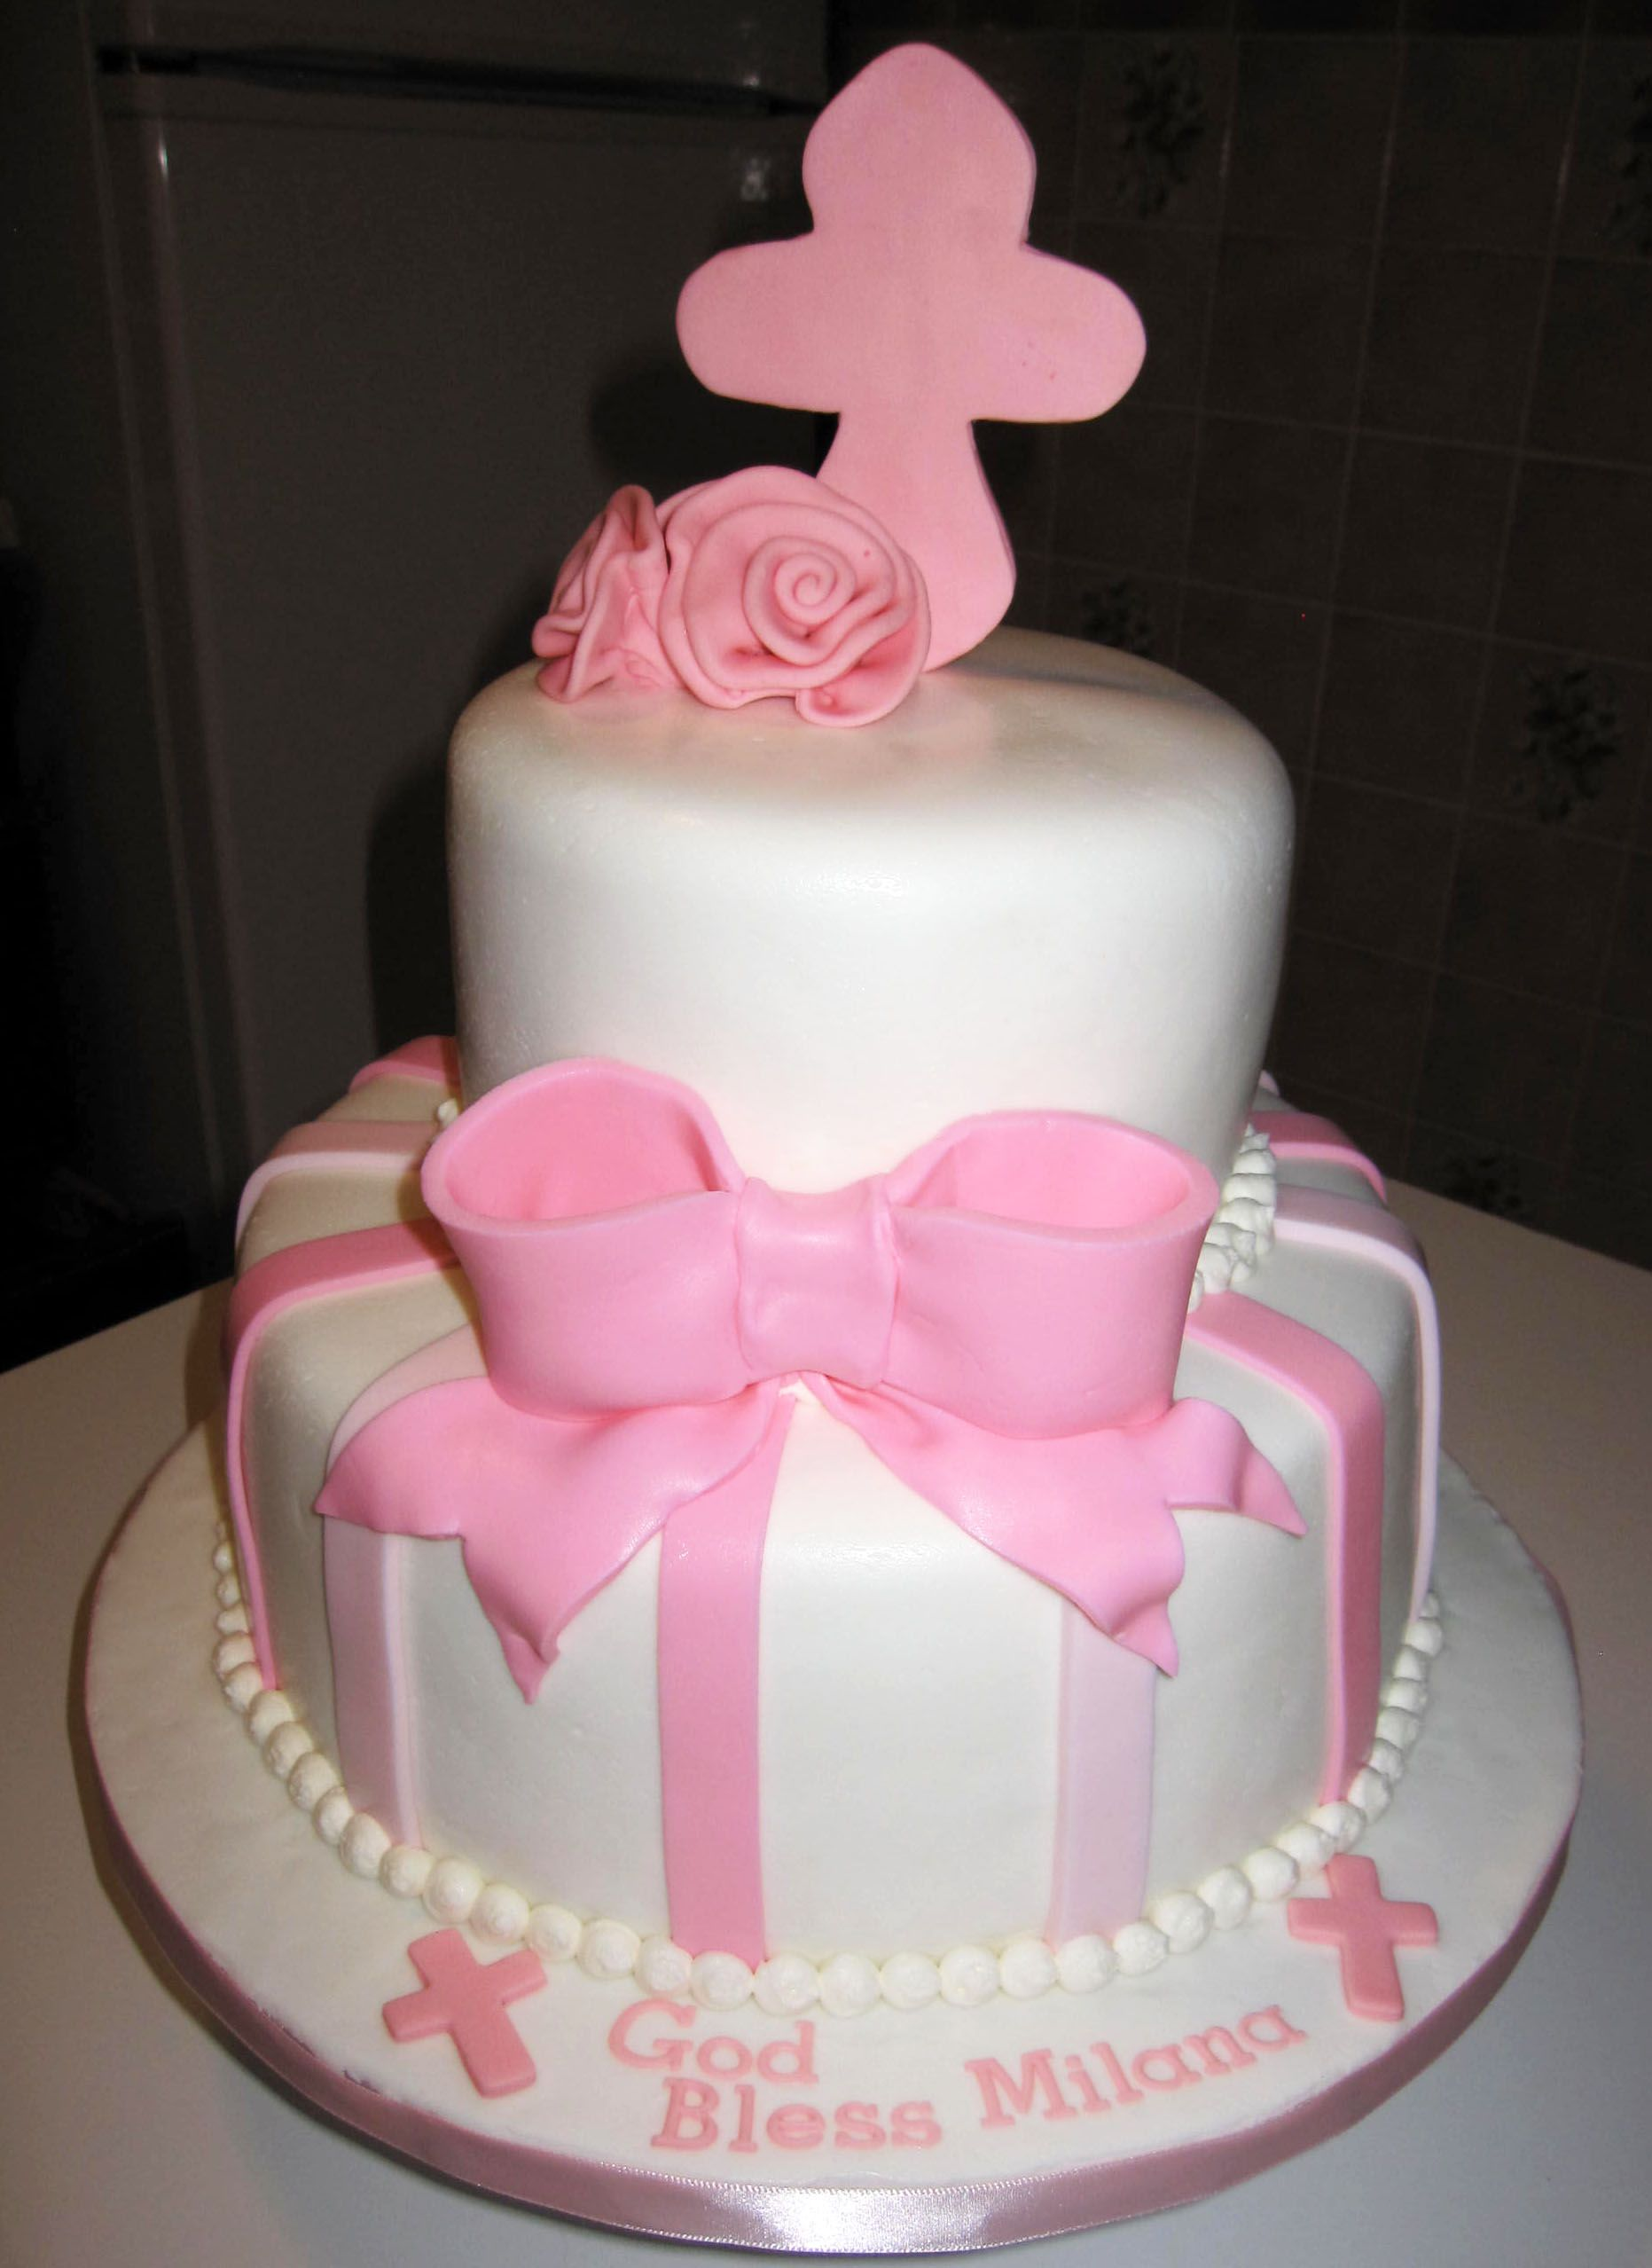 Cake Designs For Baby Dedication : Baby Girl Christening Cake My Baby Girl! Pinterest ...